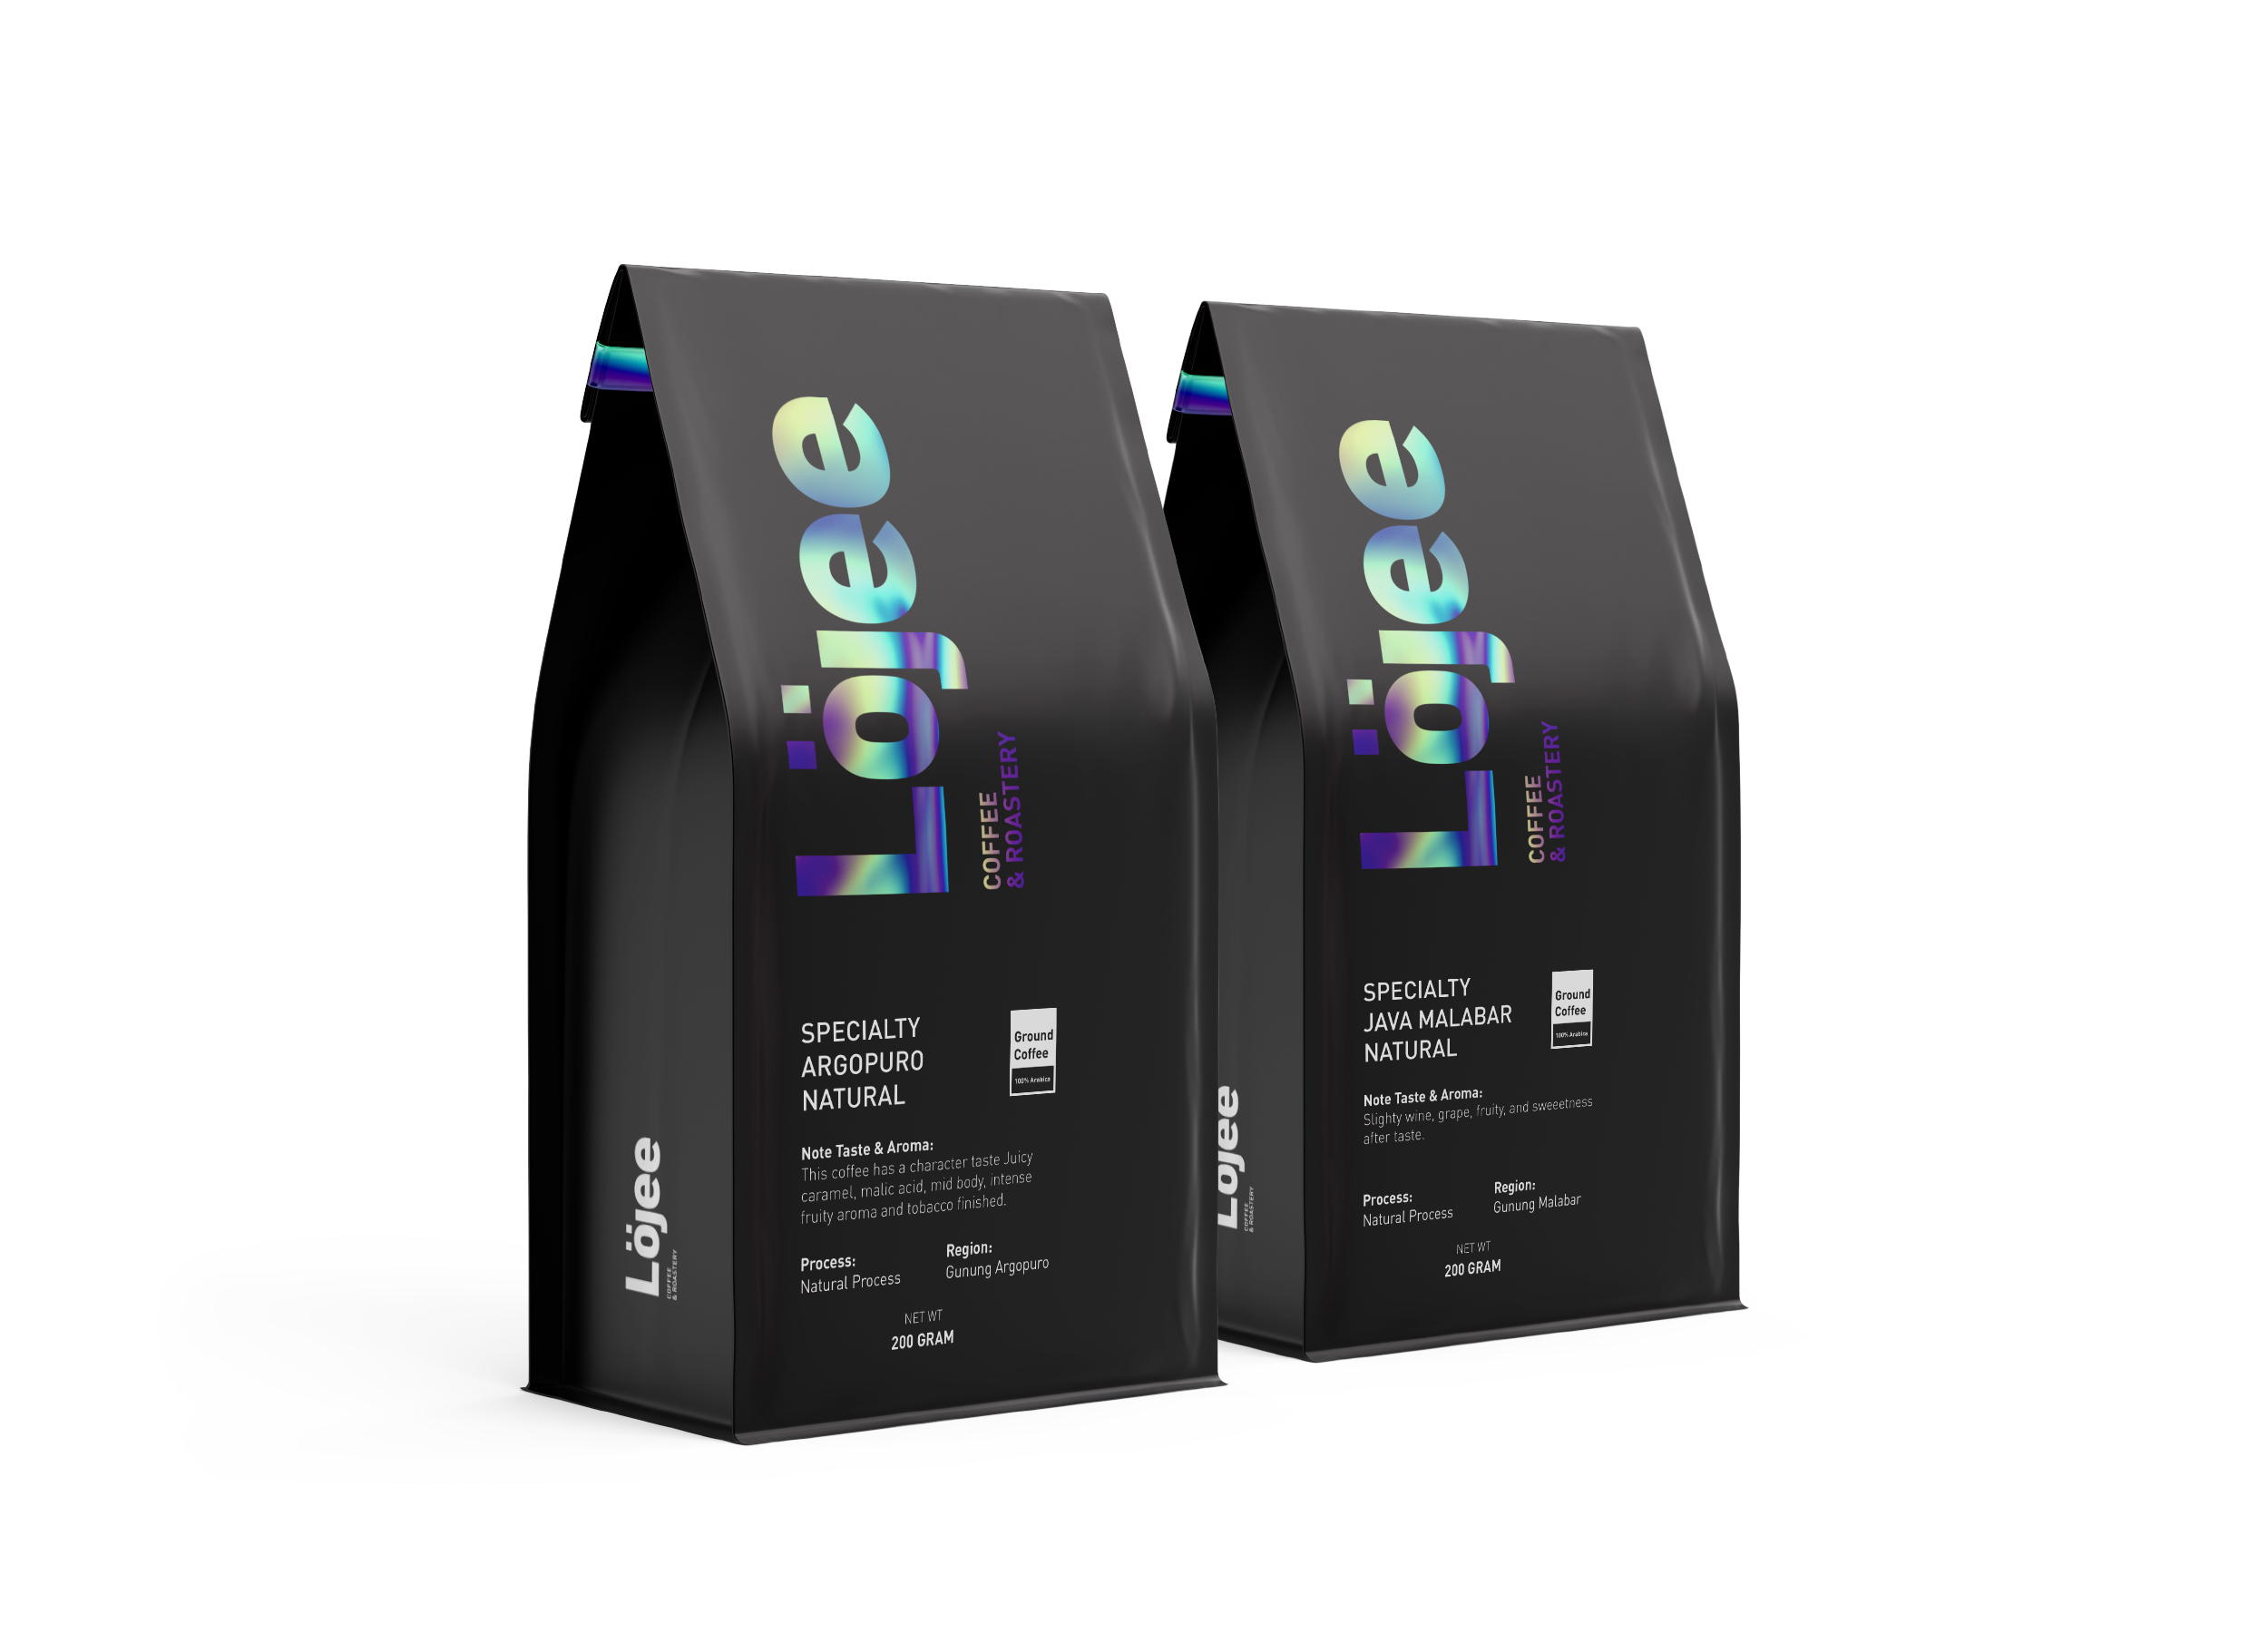 Widarto Impact Creating Coffee Packaging Design for Lojee Coffee & Roastery